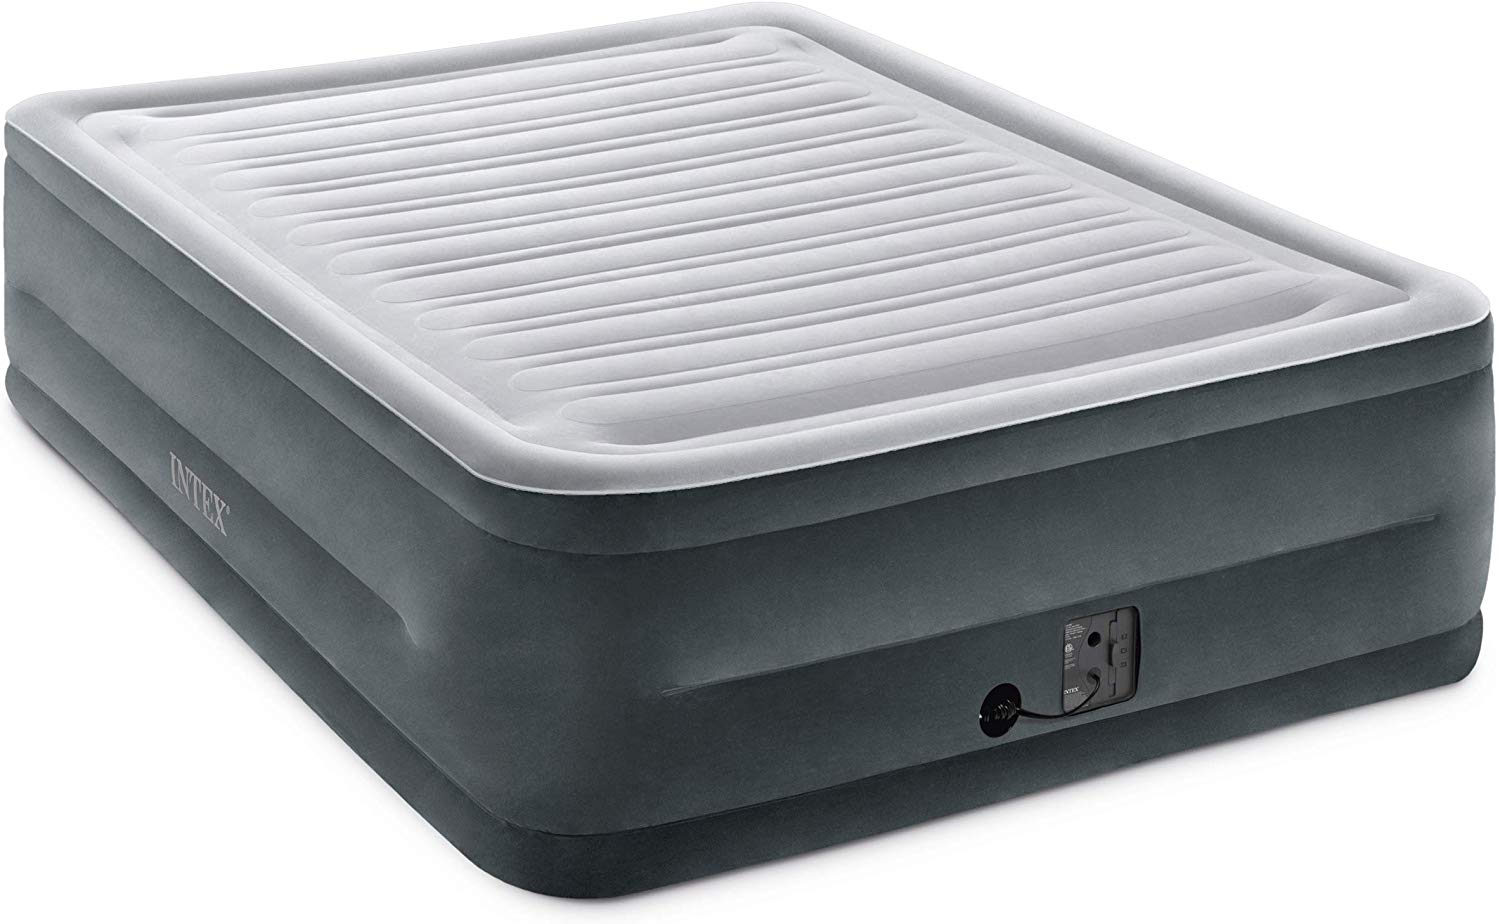 Intext Full Air Mattress